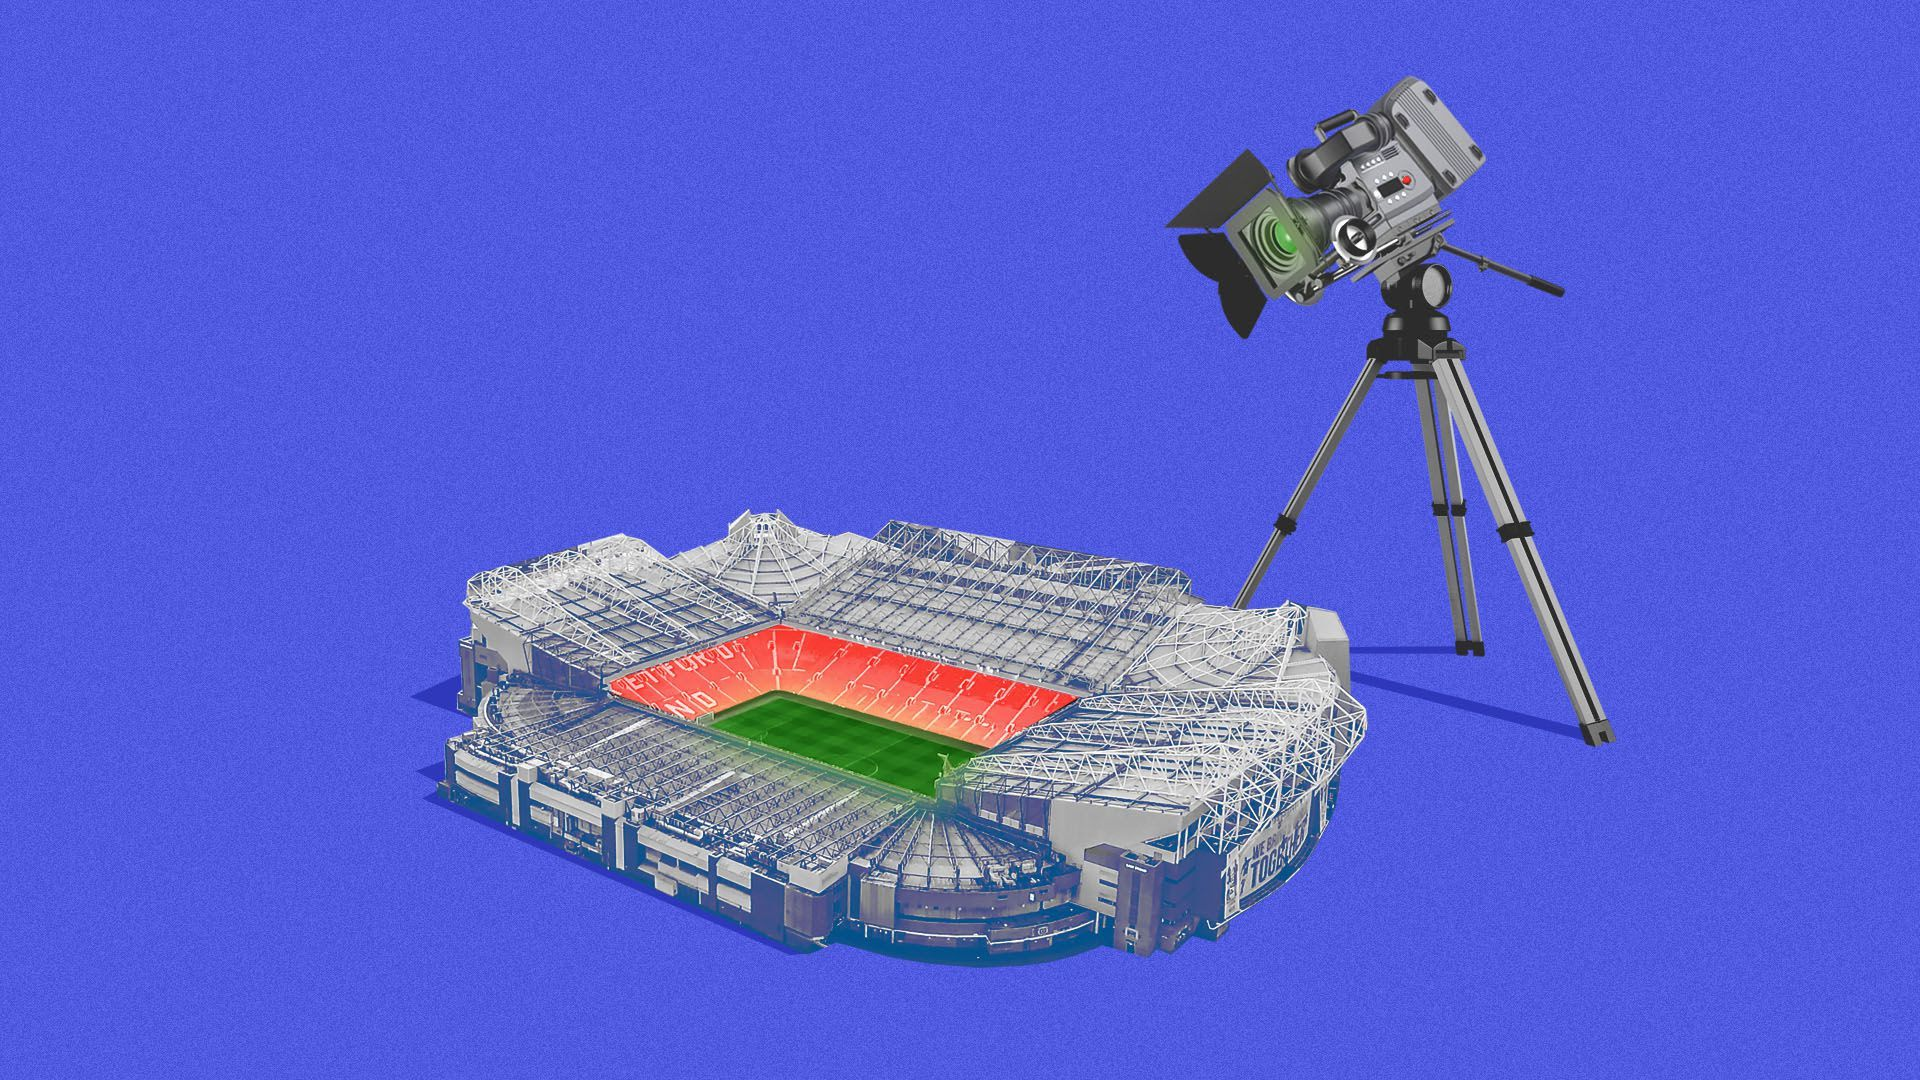 illustration of a sports stadium with a huge broadcast camera standing over it